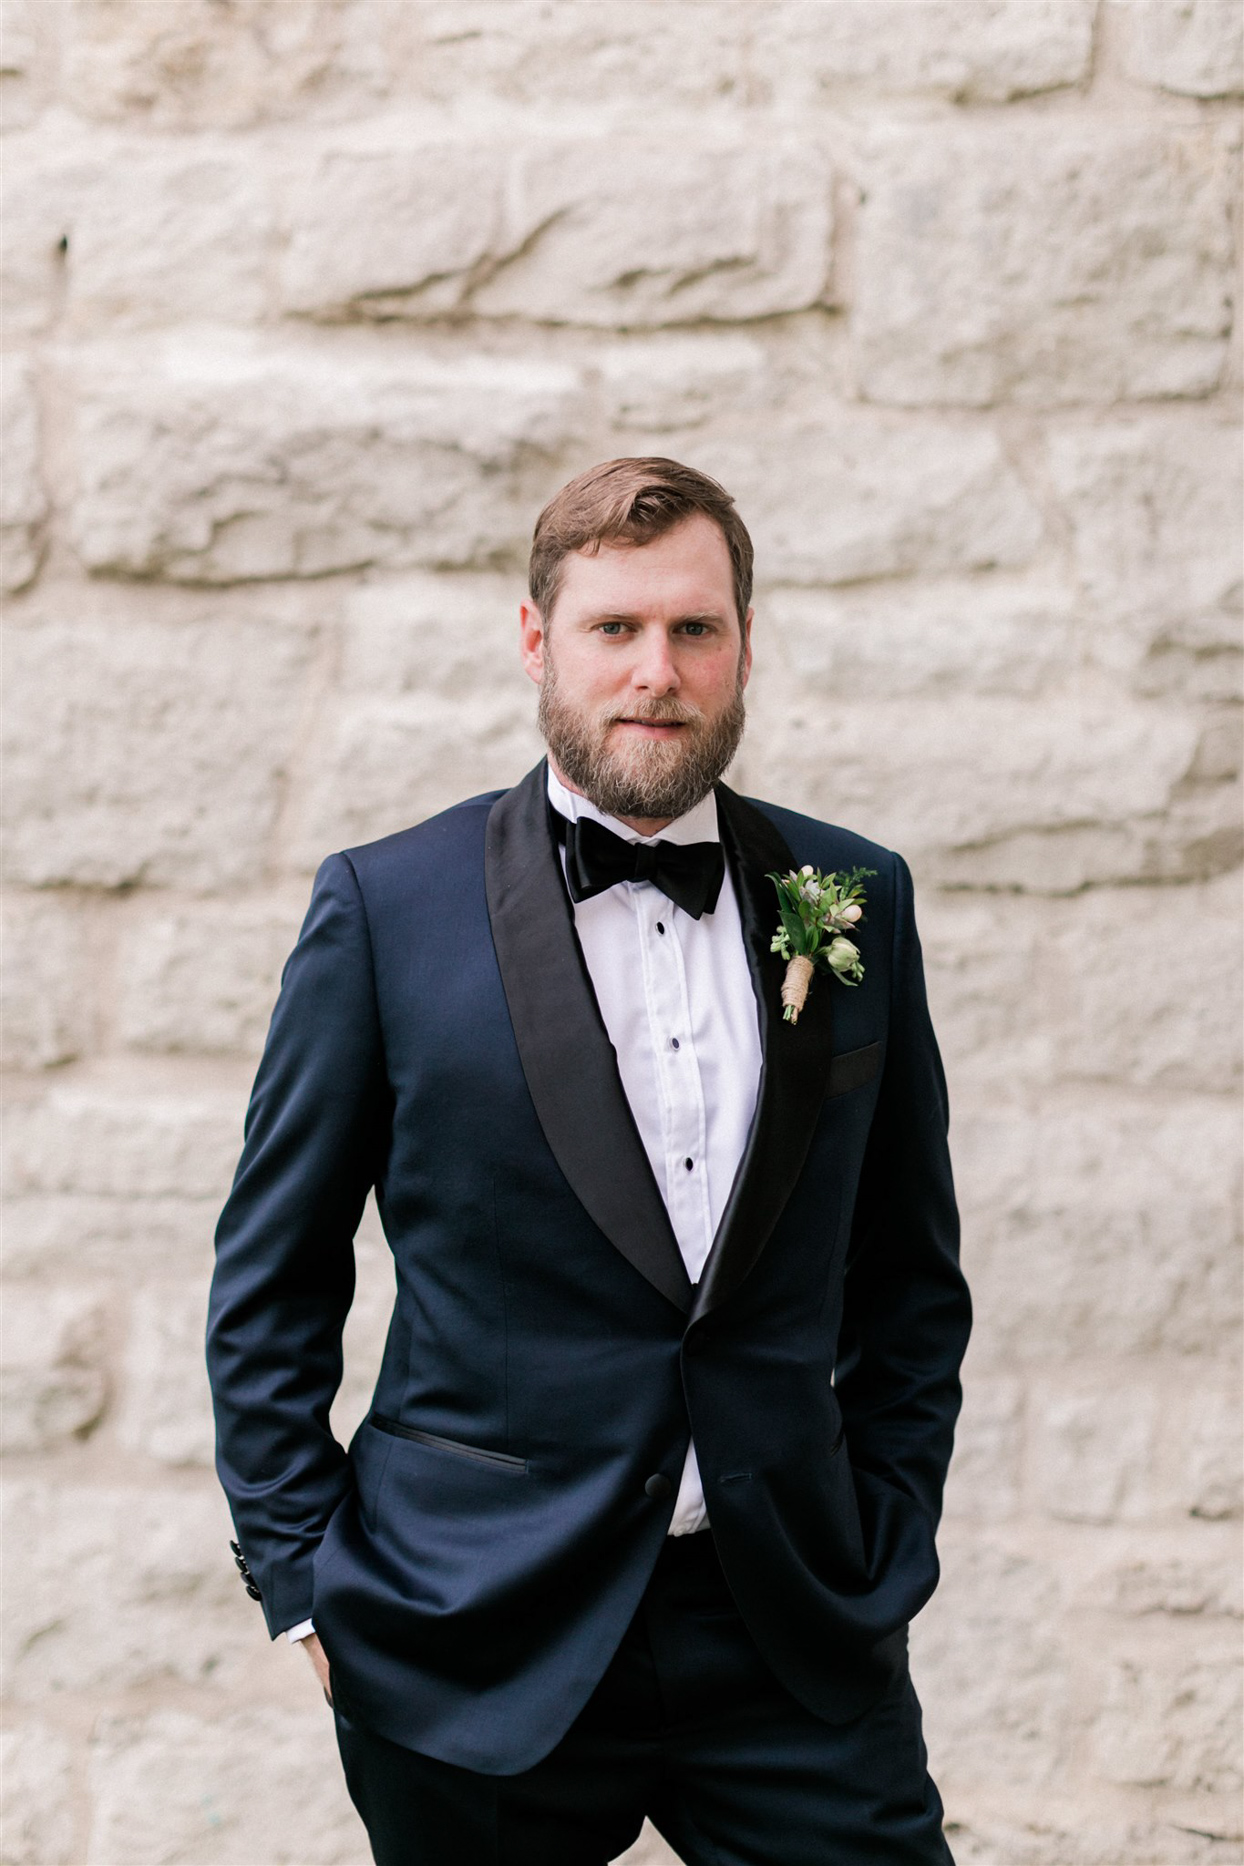 groom in navy suit with boutonniere